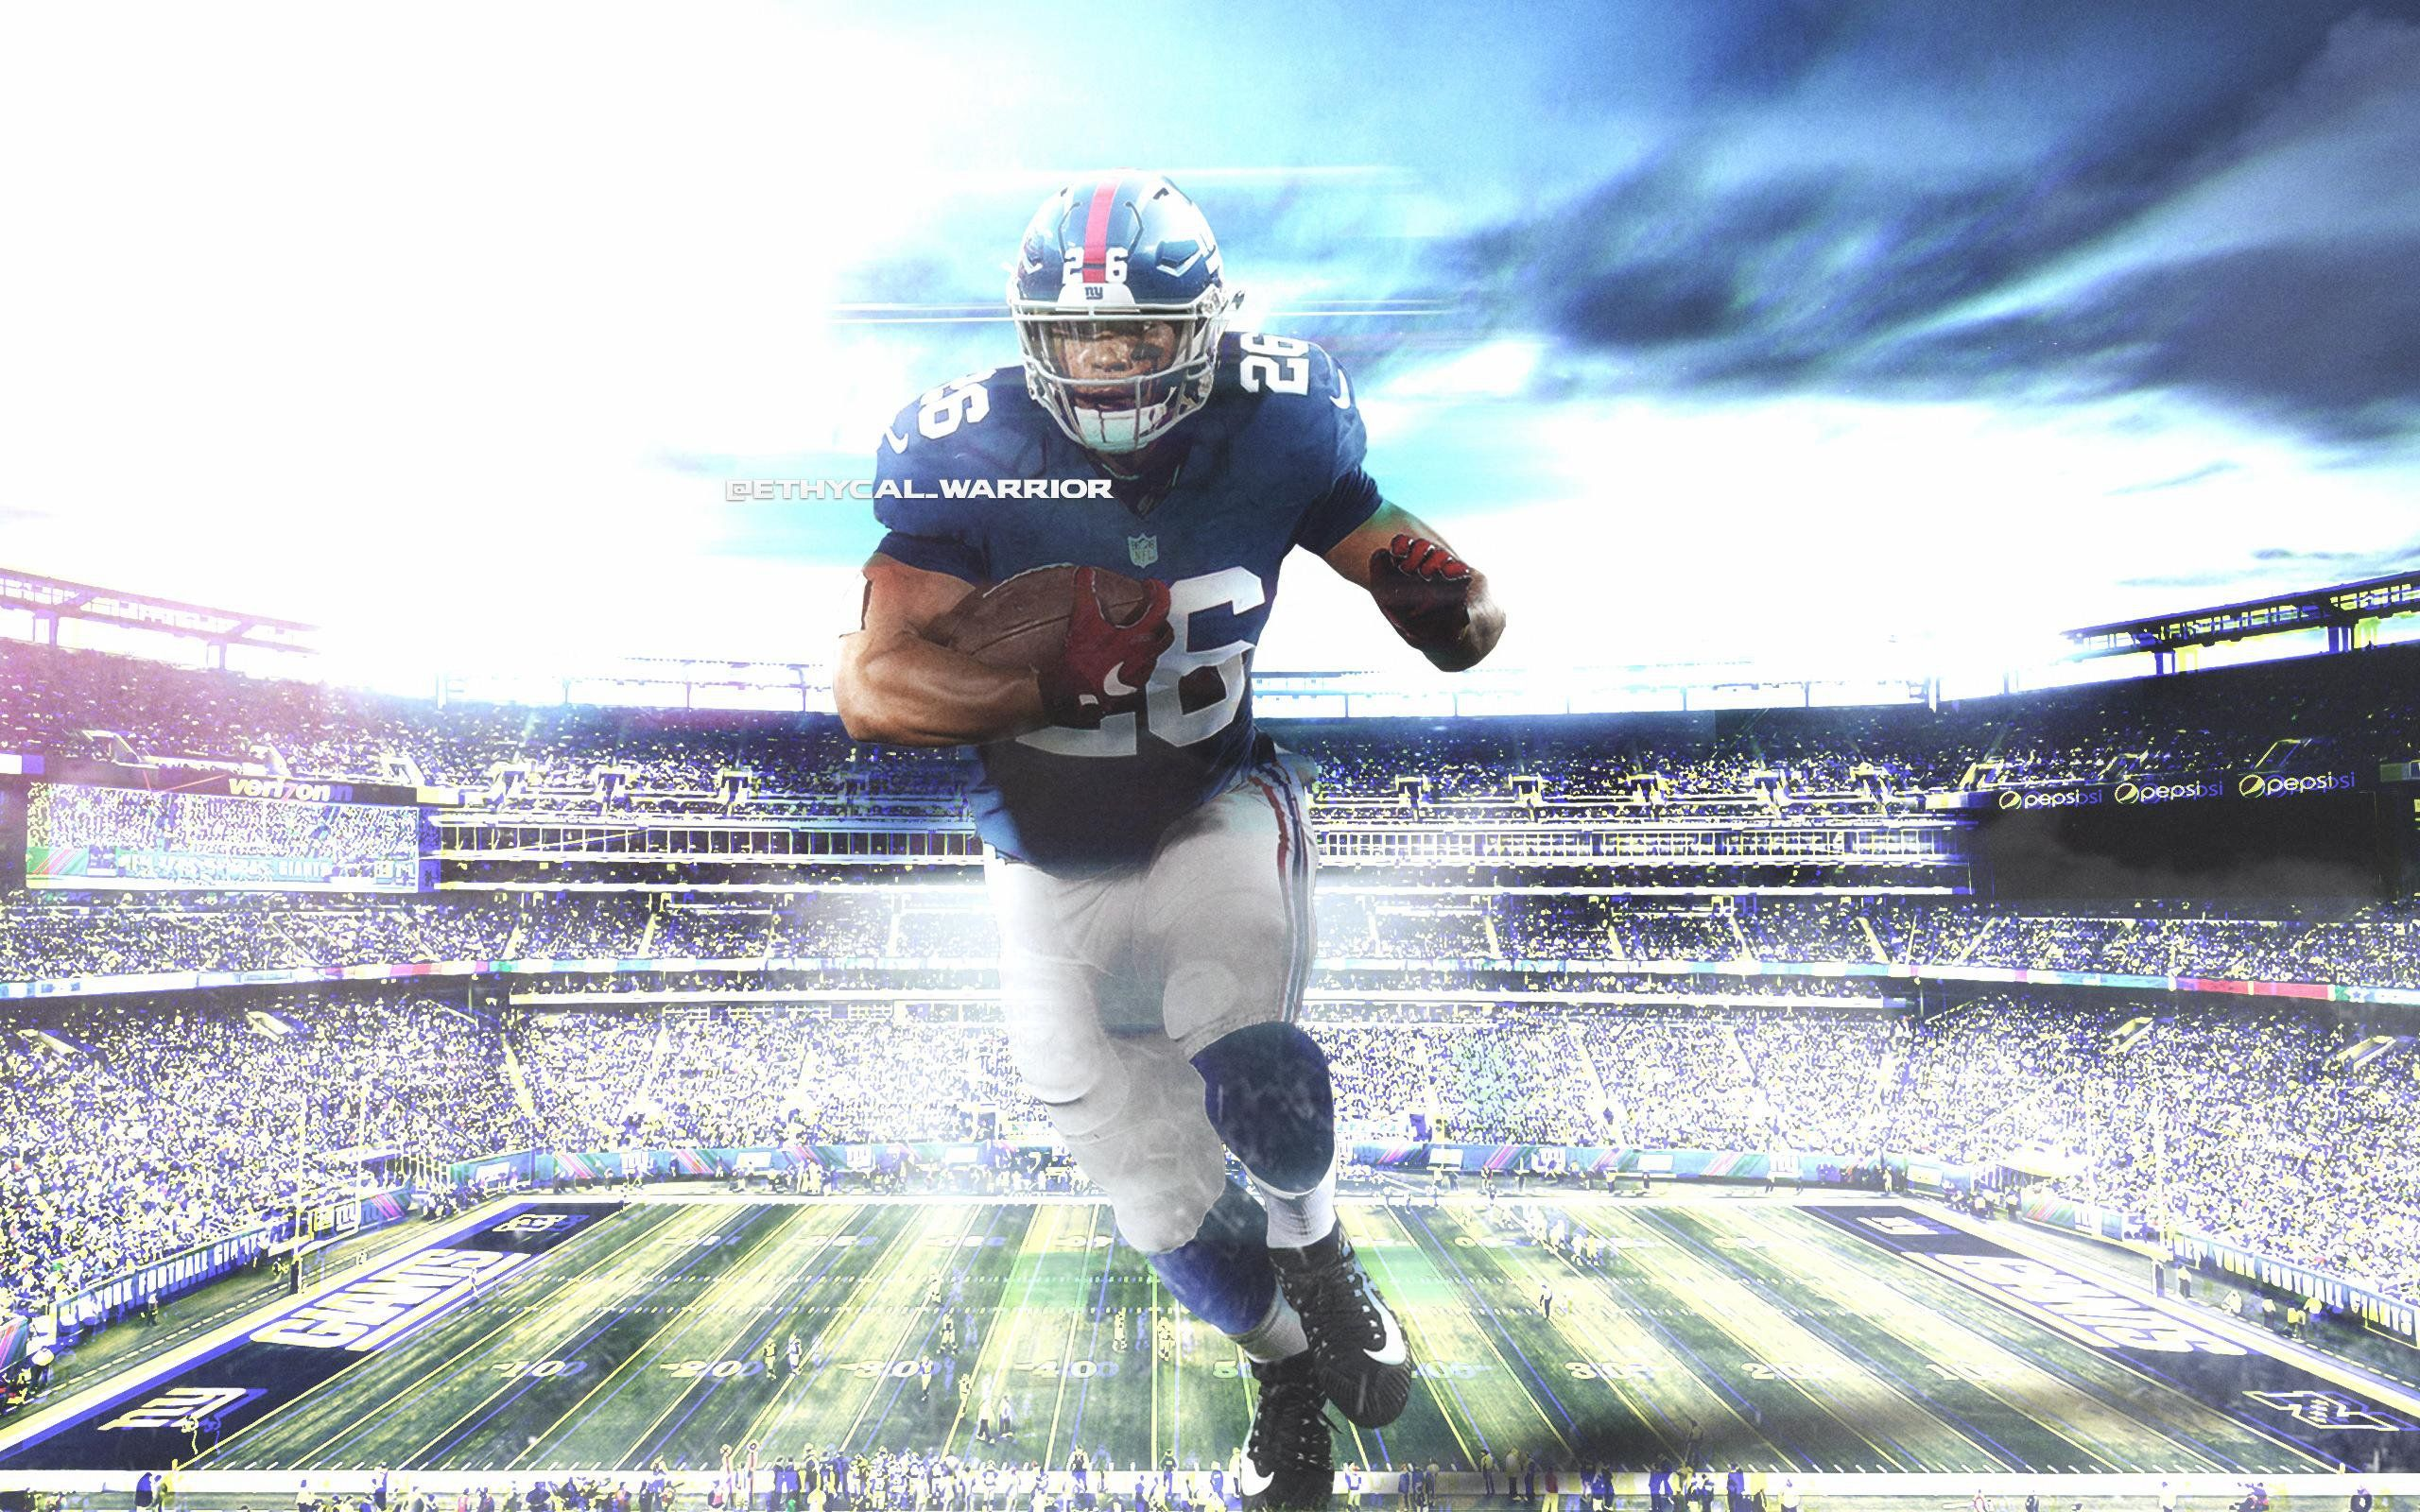 Saquon Barkley Wallpapers   Top Saquon Barkley Backgrounds 2560x1600